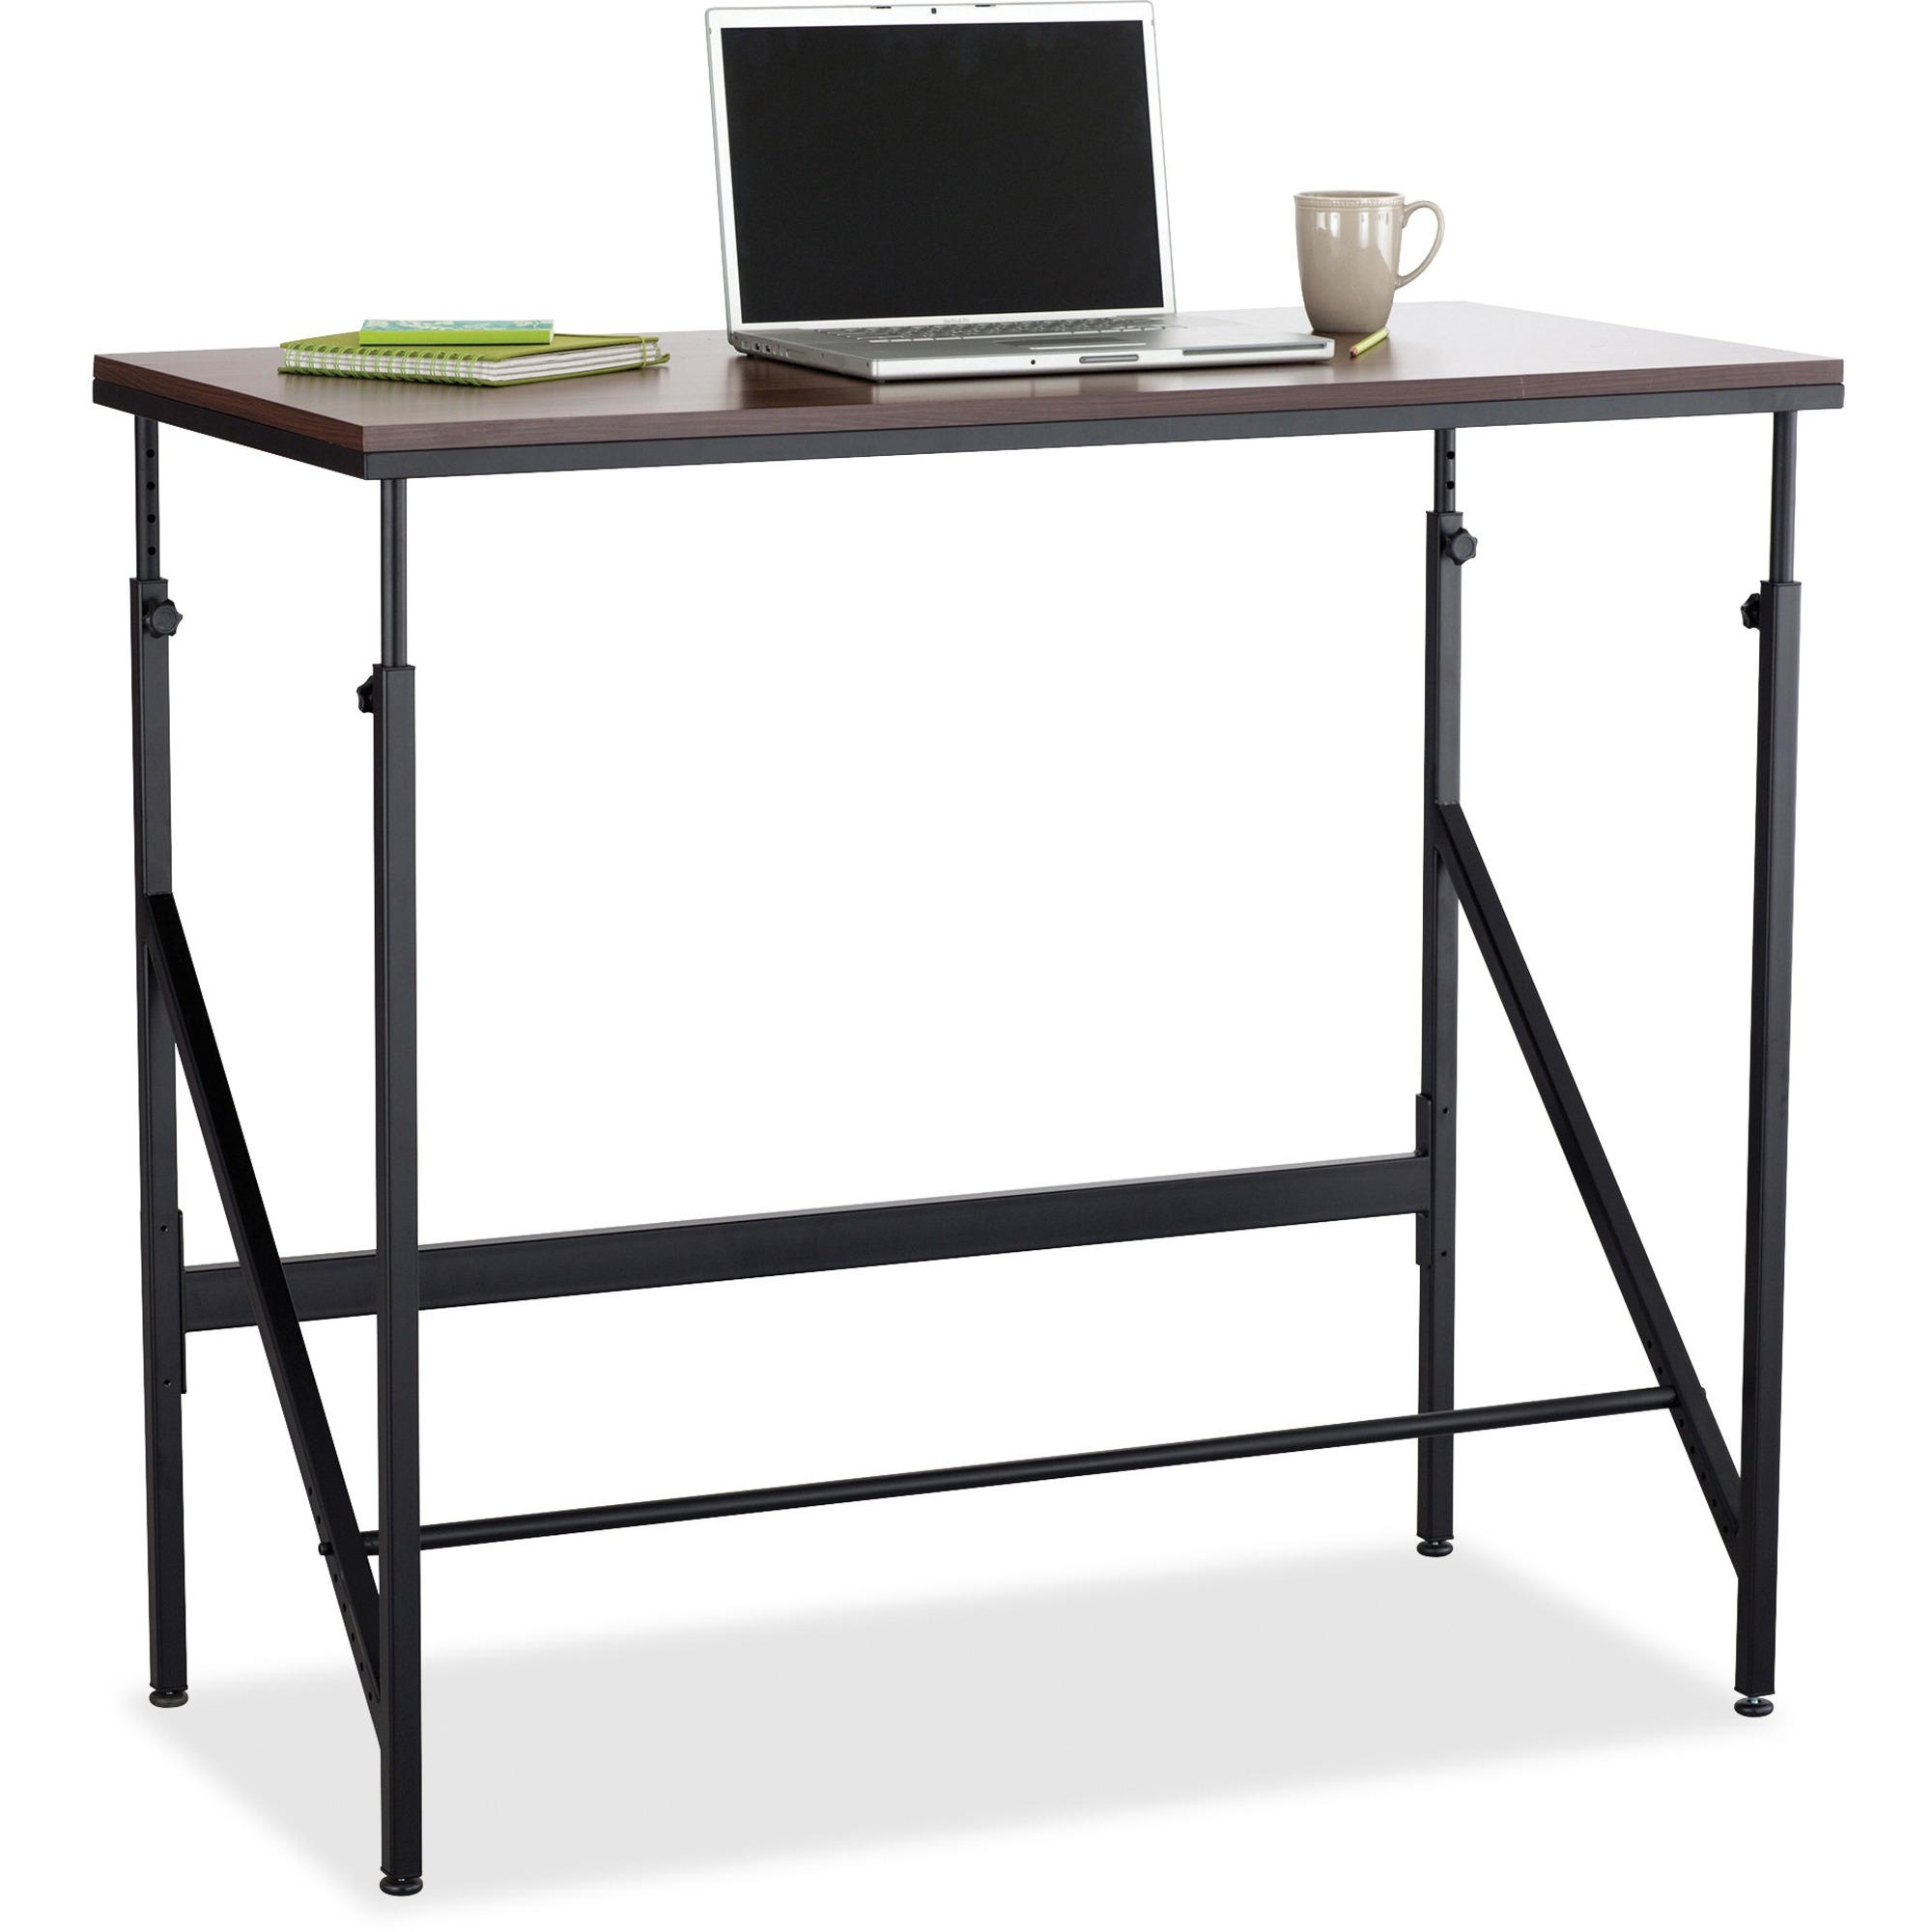 clean minds offers classroom standing sturdy m stability increased desk stand desks steady construction standsteadytabletop moving tabletop